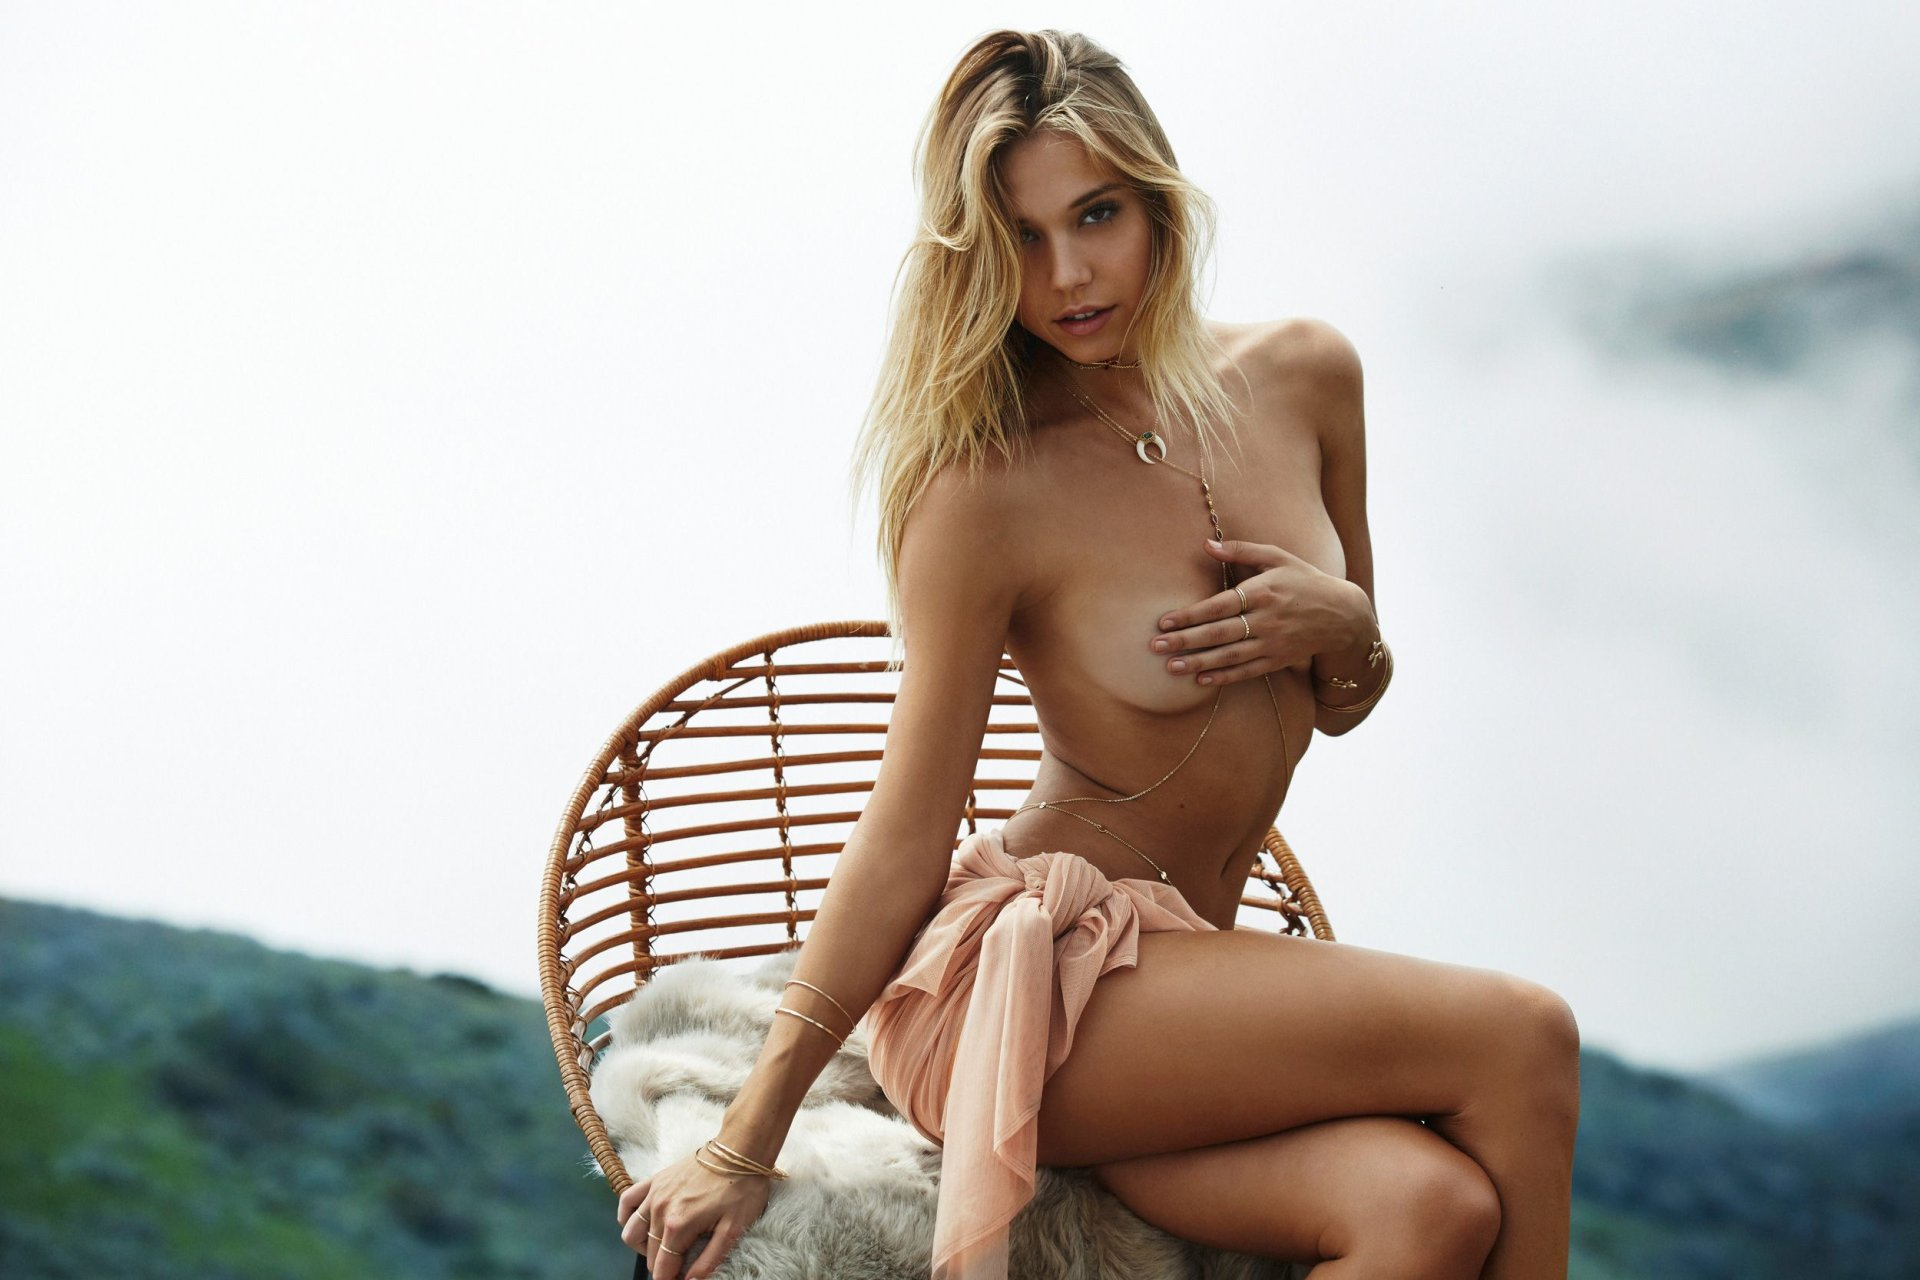 Alexis ren topless and sexy naked (51 photos), Pussy Celebrites picture